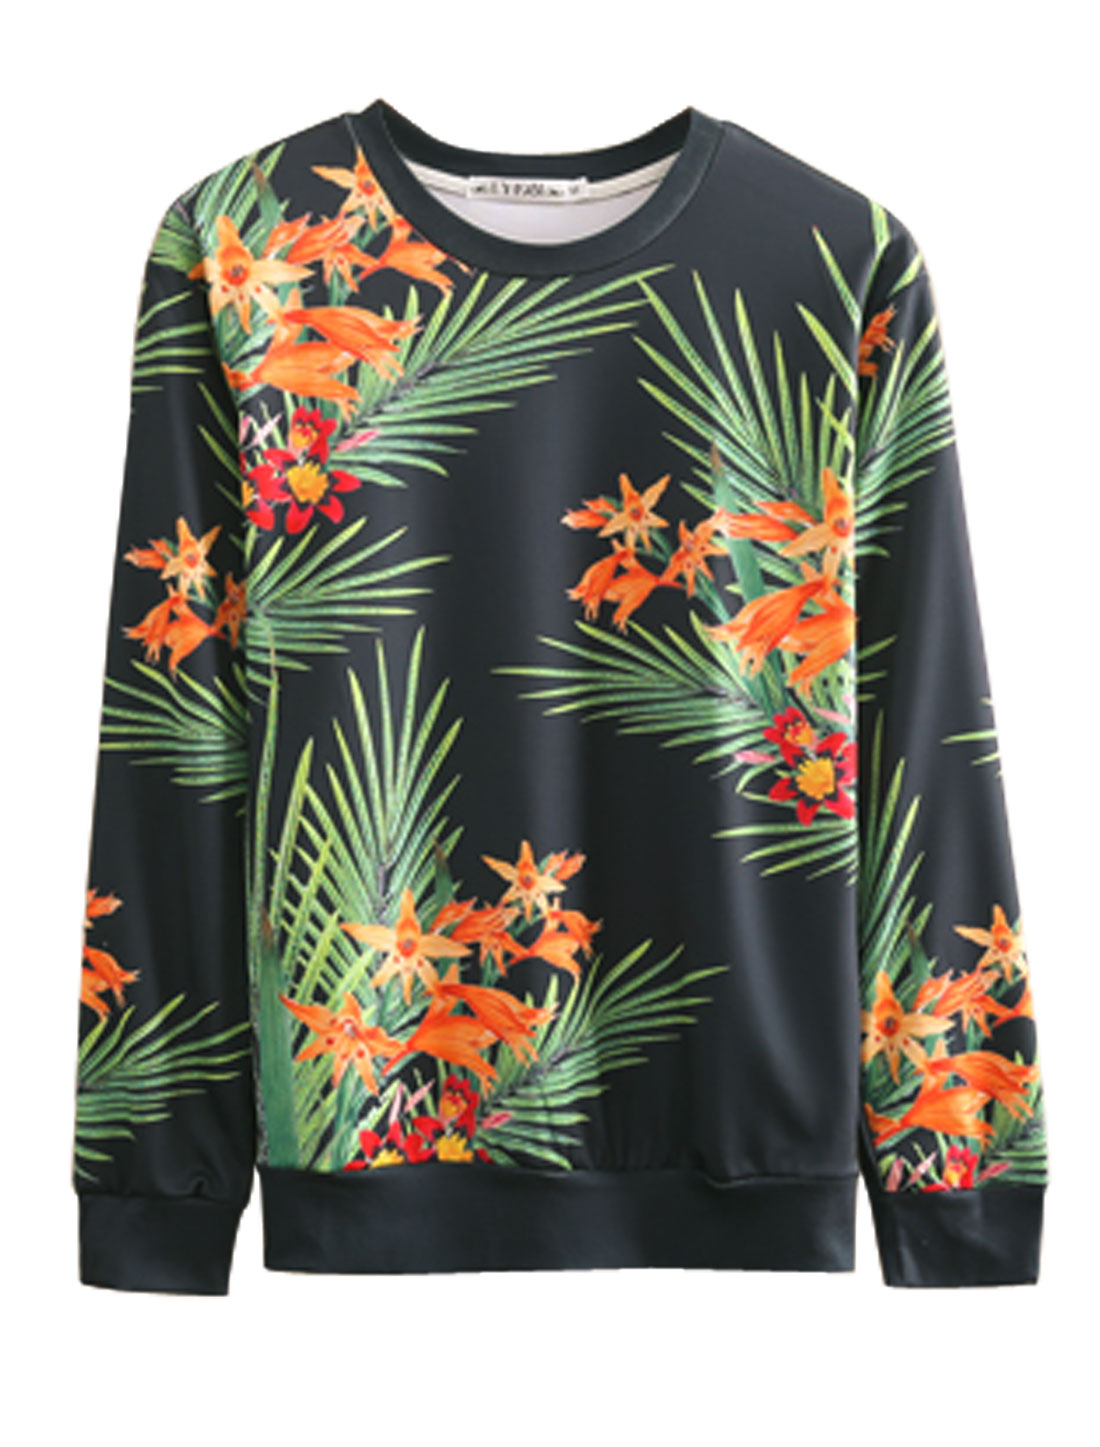 Men Black Green Floral Prints Long Sleeves Round Neck Sweatshirt M